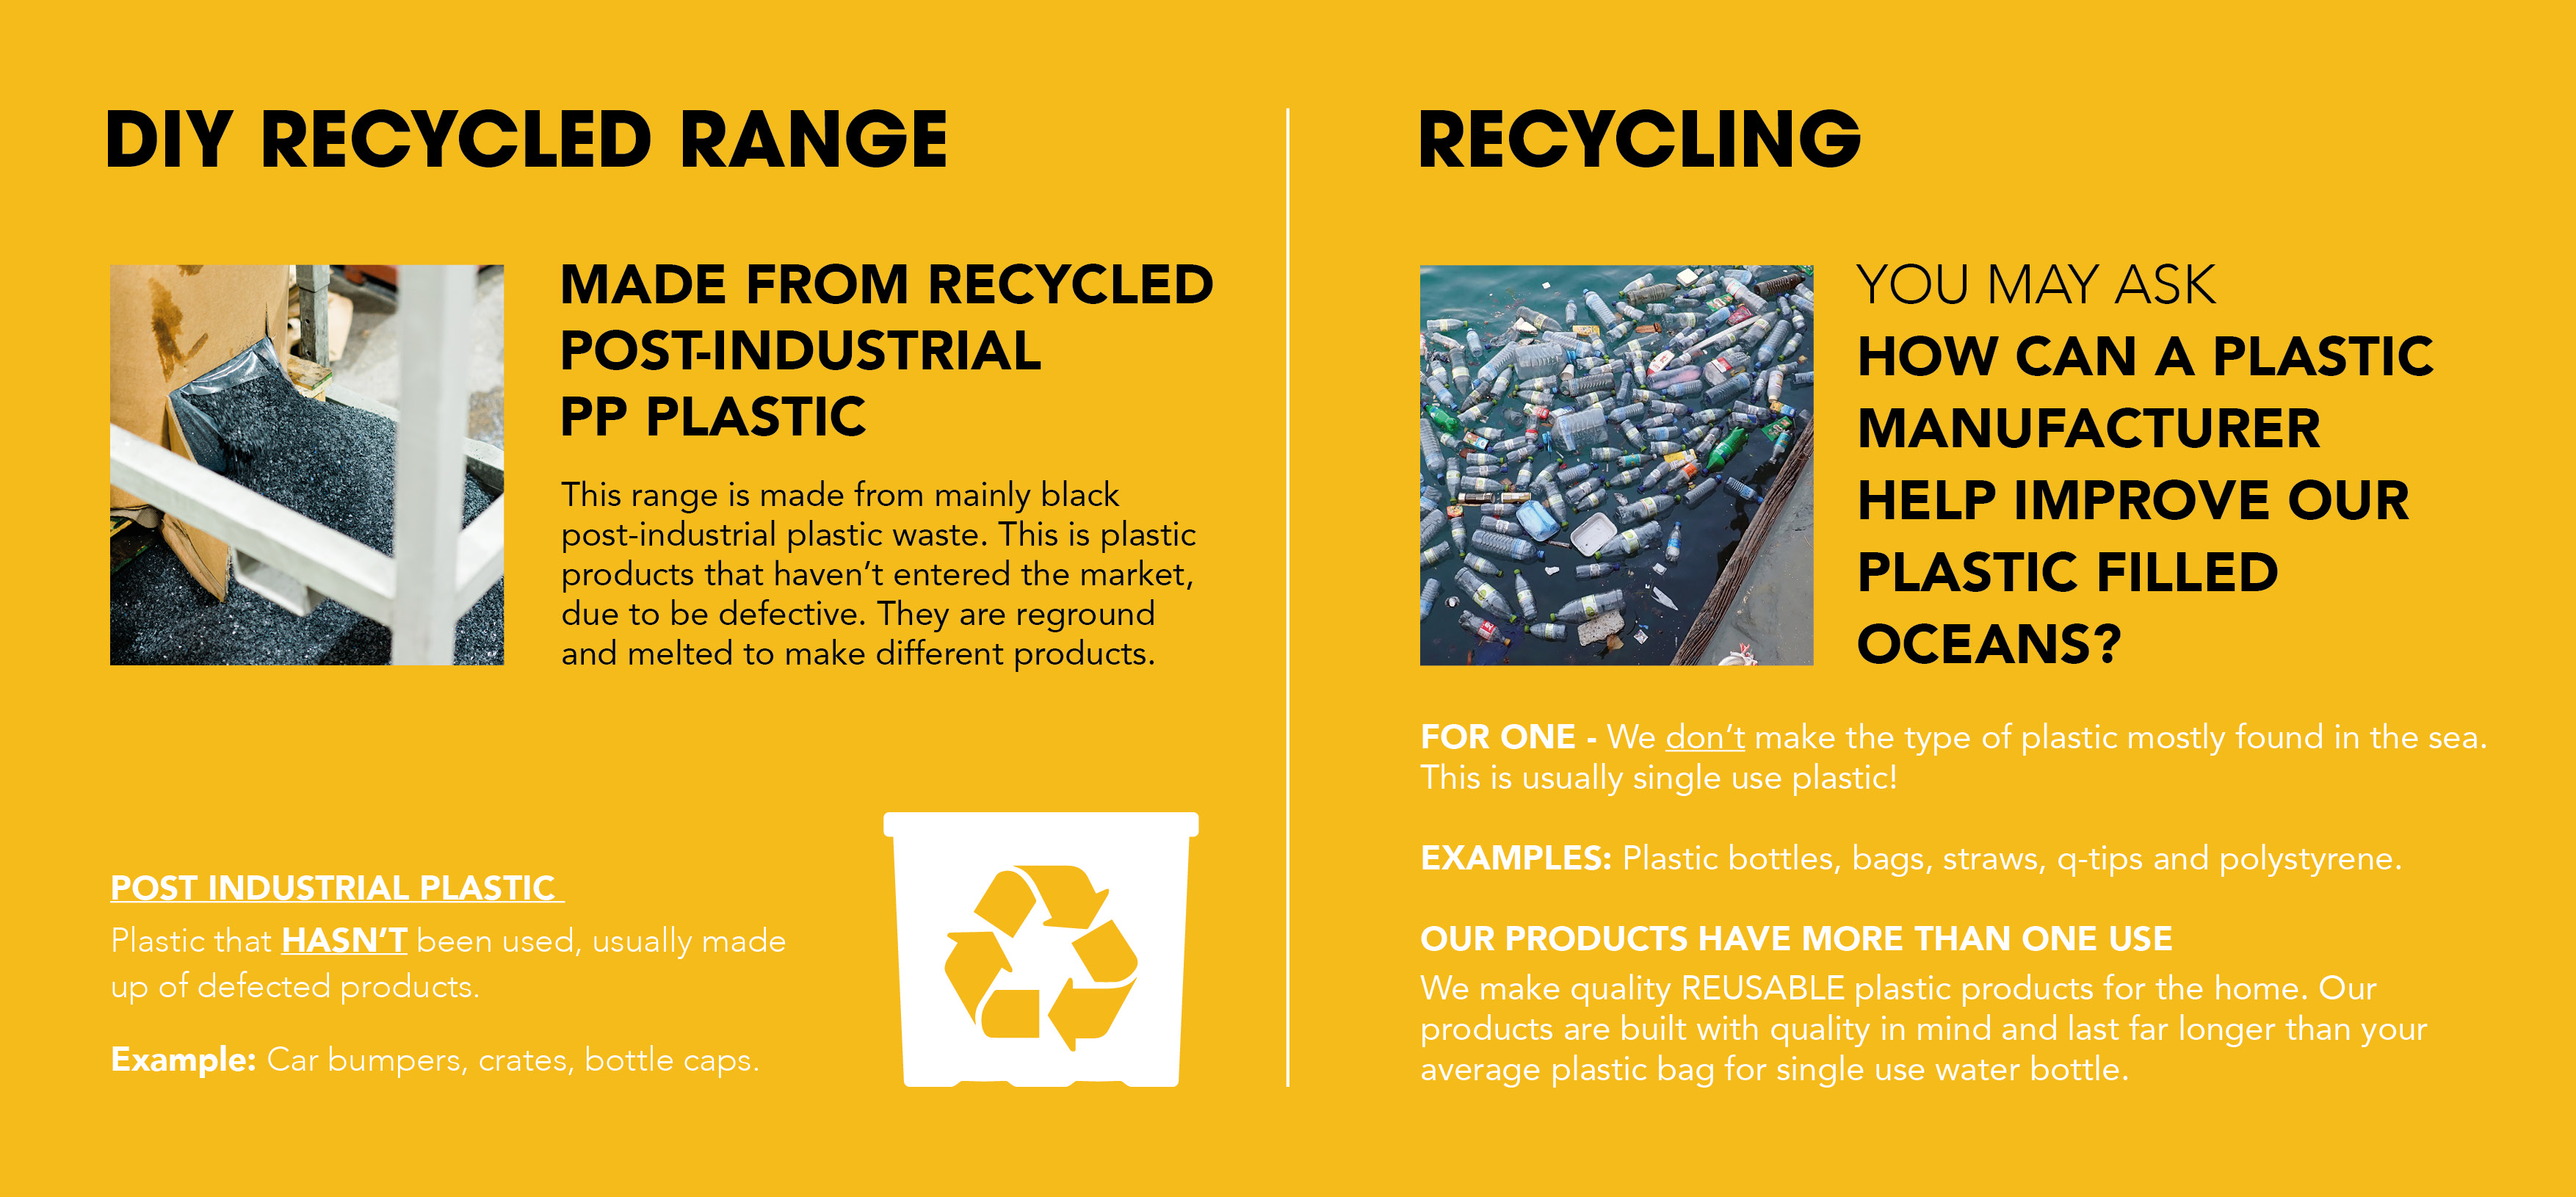 WHAM Recycled Plastic Infographic